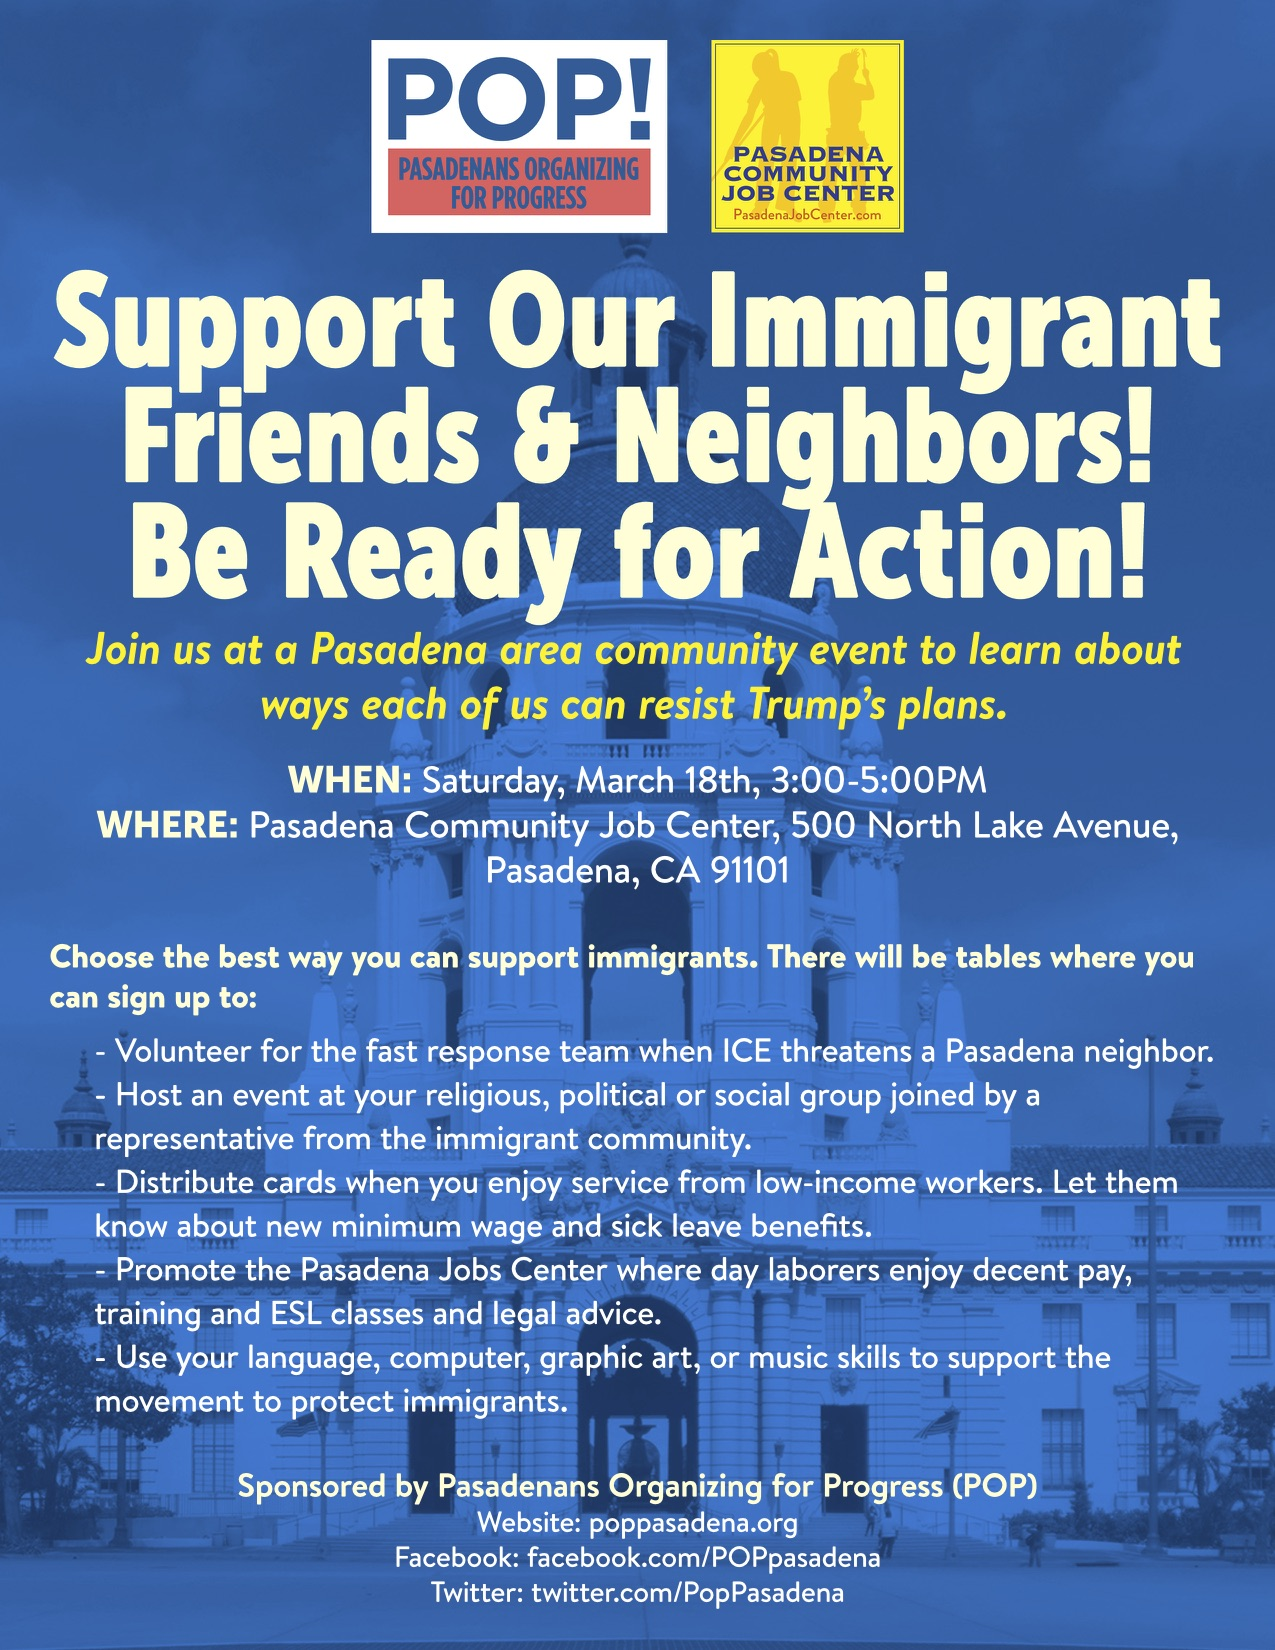 POP_Flyer_Support_Immigrant_Neighbors.jpg